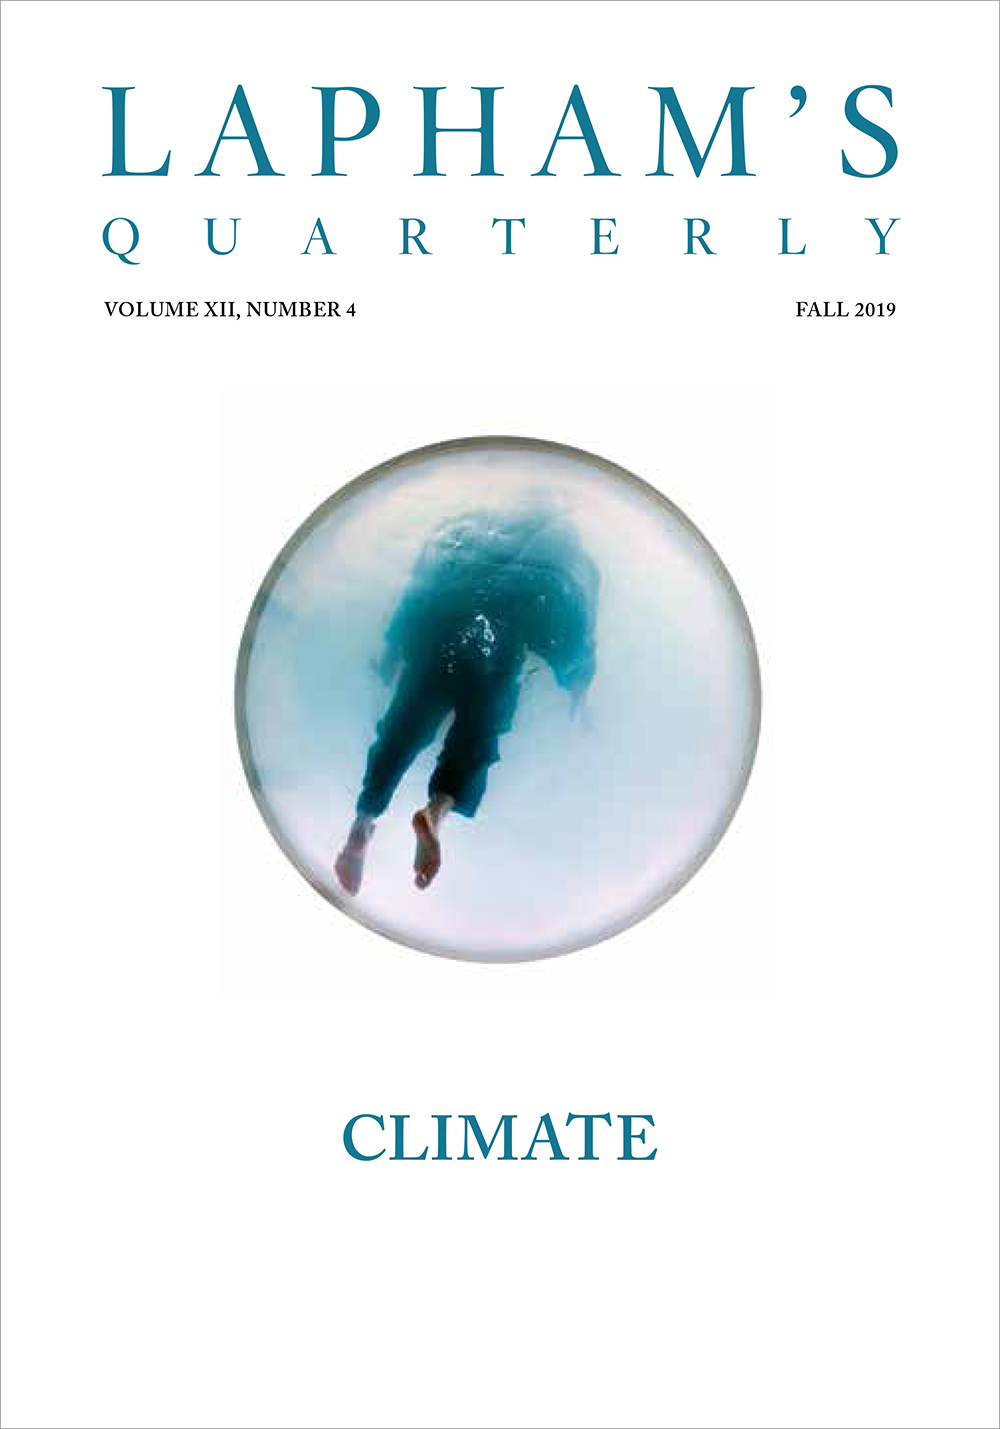 Cover of Climate, the Fall 2019 issue of Lapham's Quarterly.